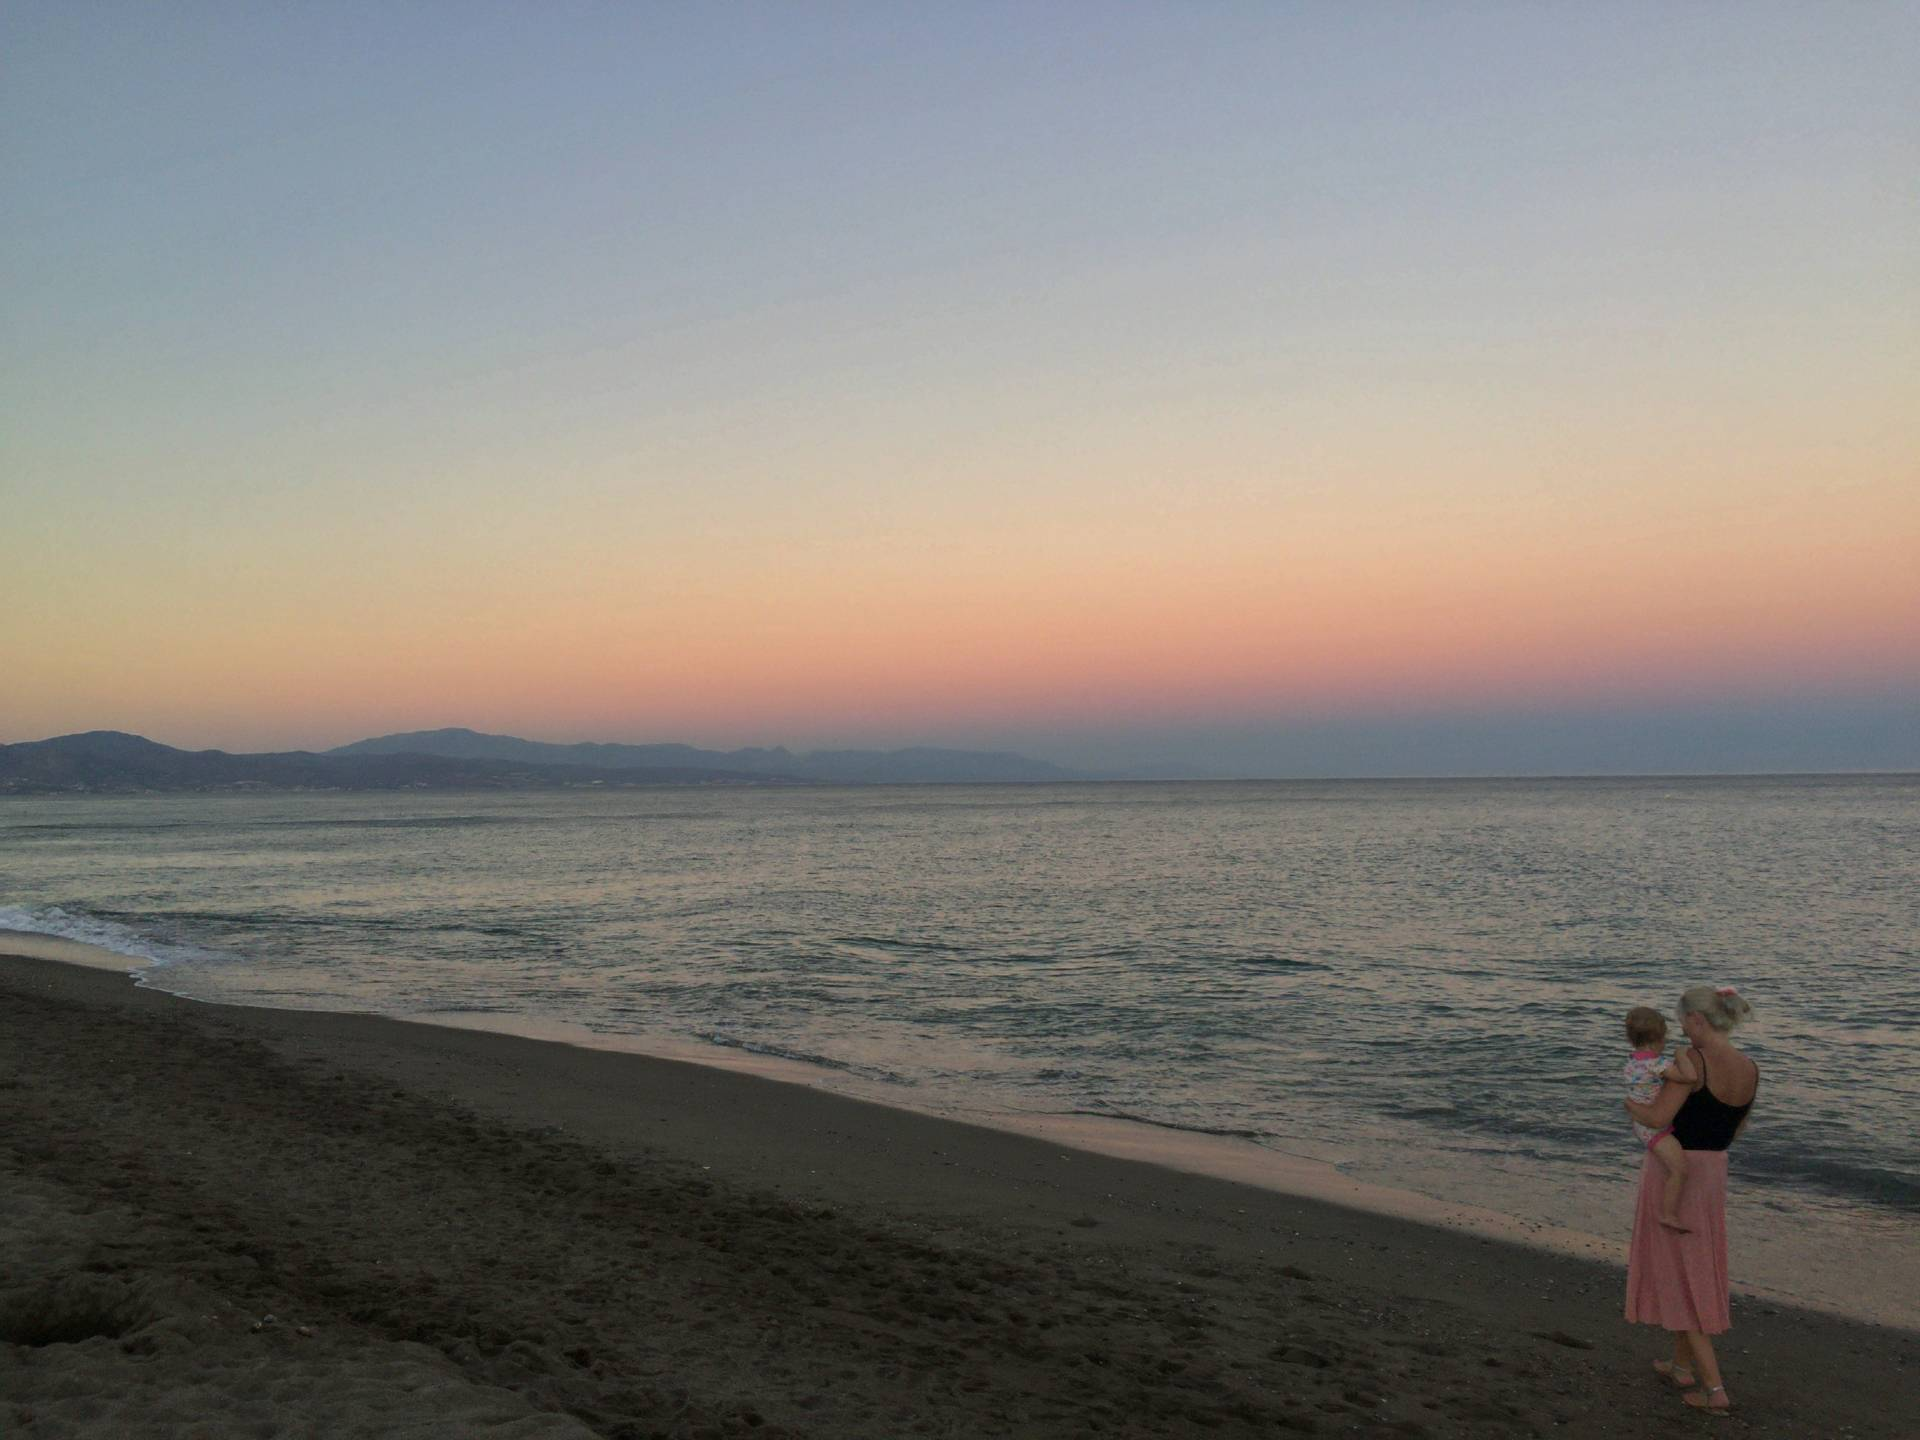 A beautiful pink sunset on the beach. Mummy carrying a toddler along the edge of the sea.